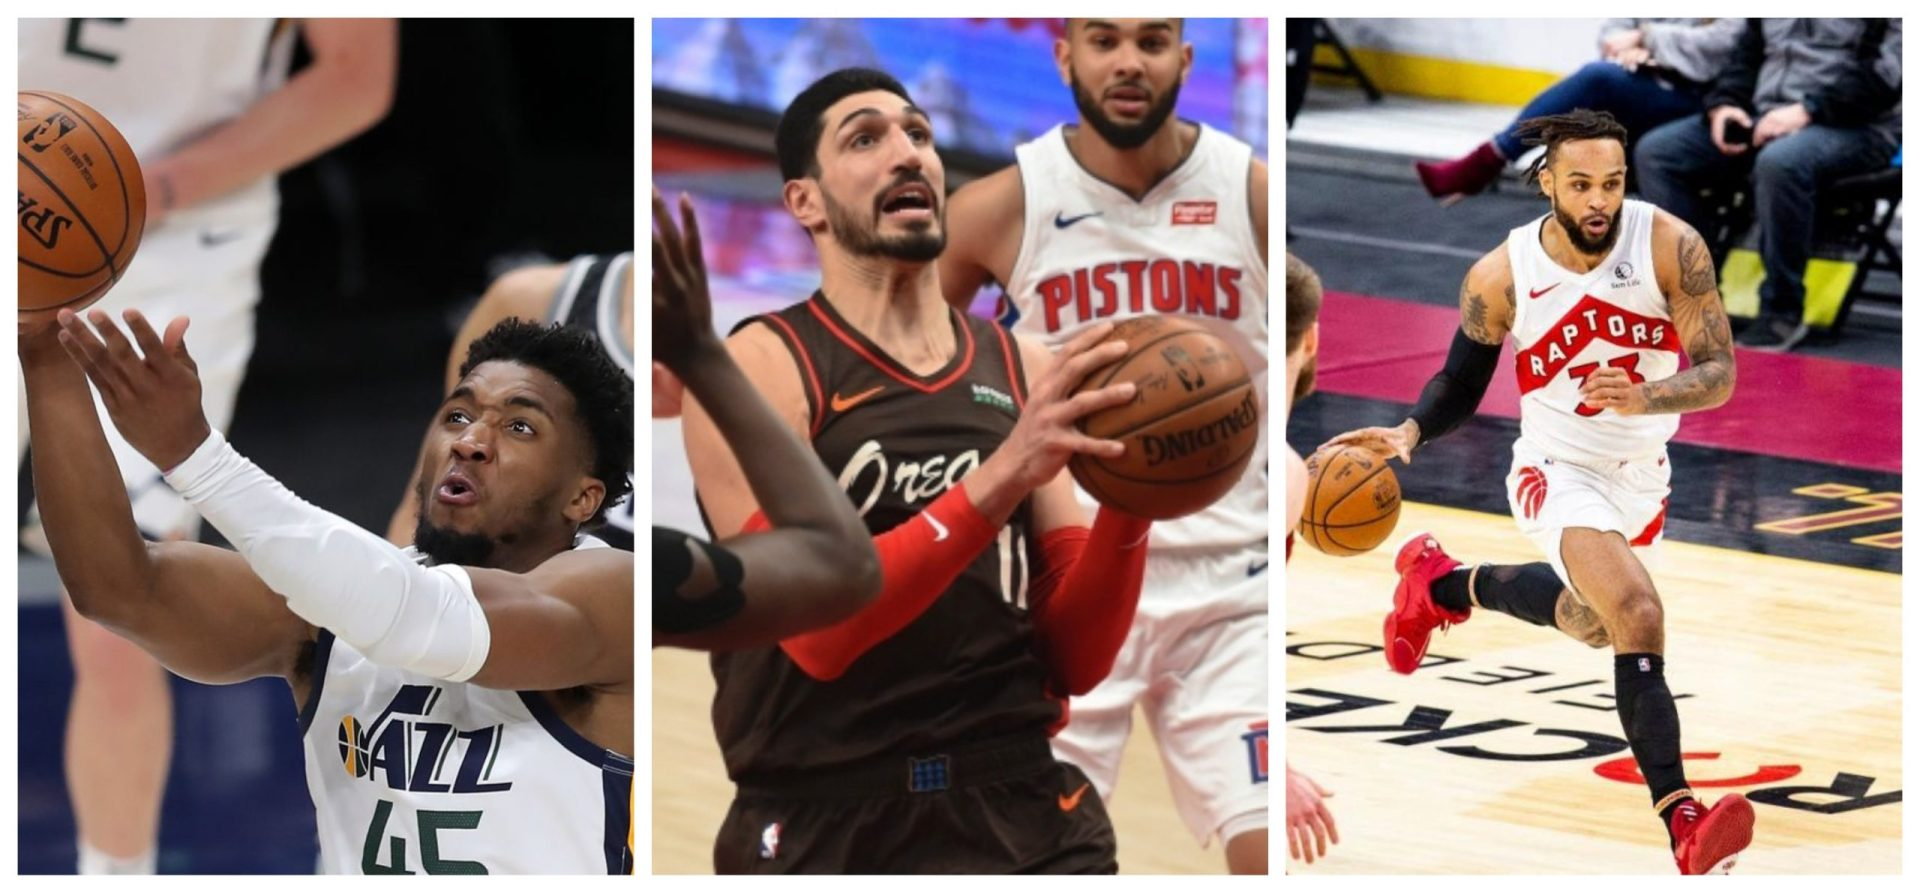 NBA Week 16 April 10 Results: Scores, standings, match summary and highlights - THE SPORTS ROOM